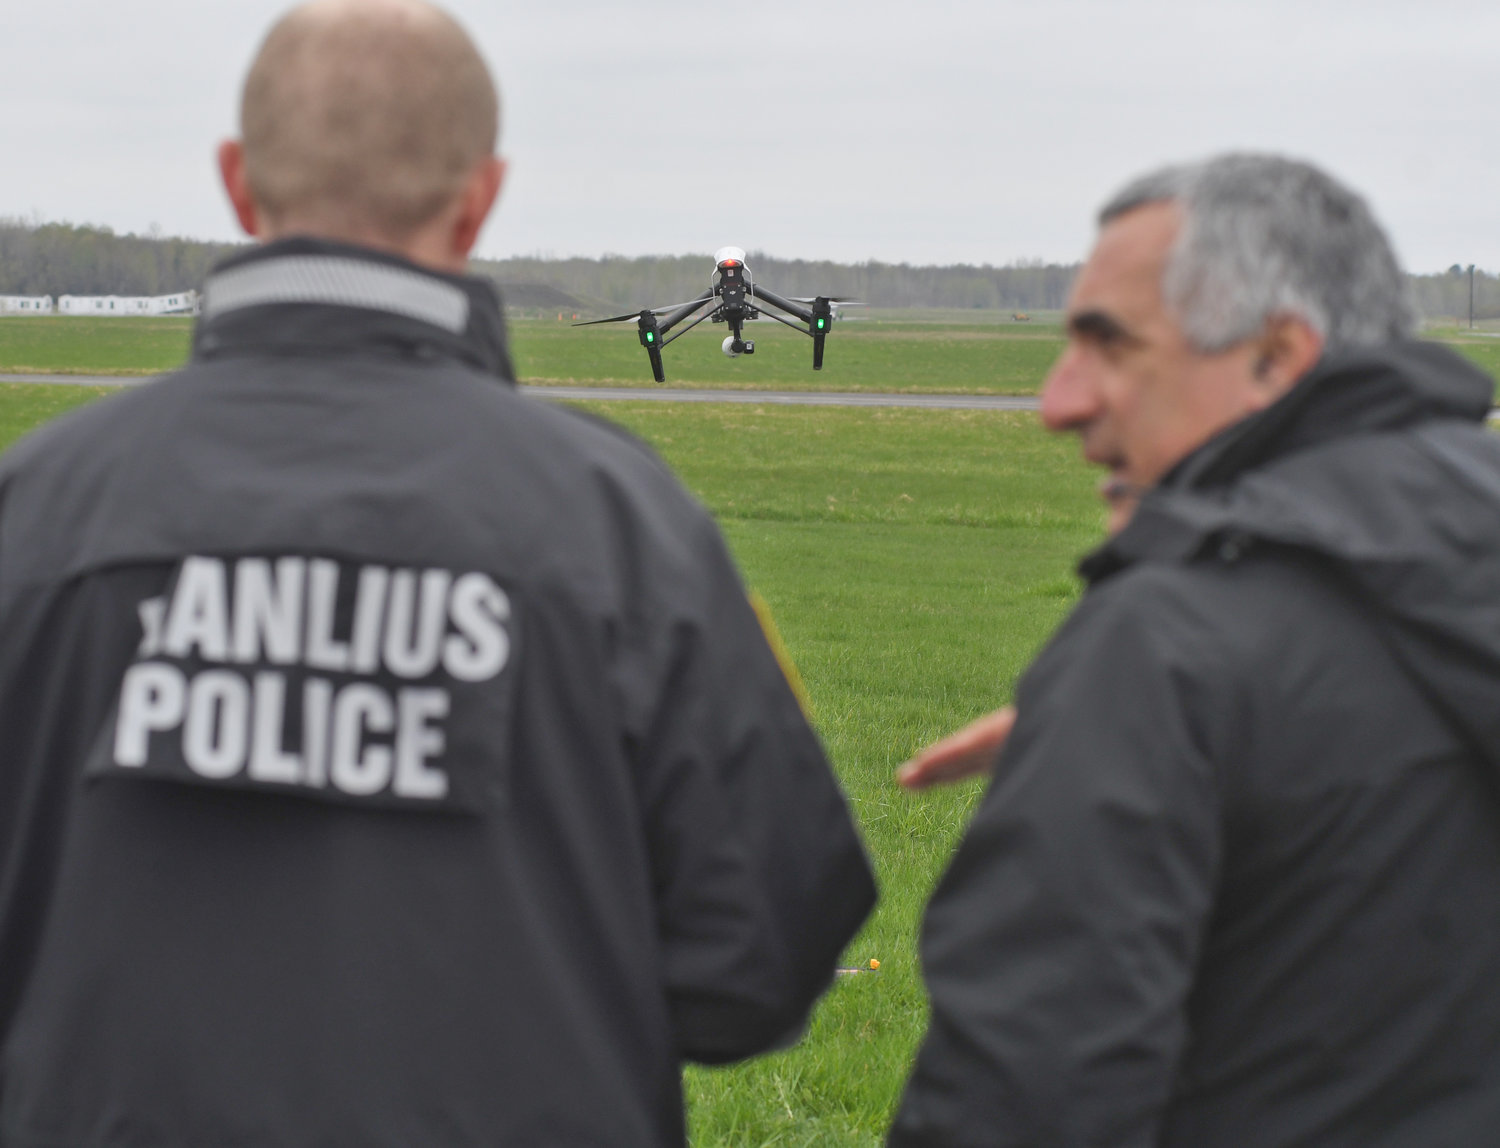 STUDENT AND TEACHER — Sgt. Greg Snyder with the Manlius Police Department, left, tries his hand at operating a training drone at the state Preparedness Training Center on Thursday. He is instructed by Gary McPherson, one of the trainers from the state Department of Environmental Conservation.